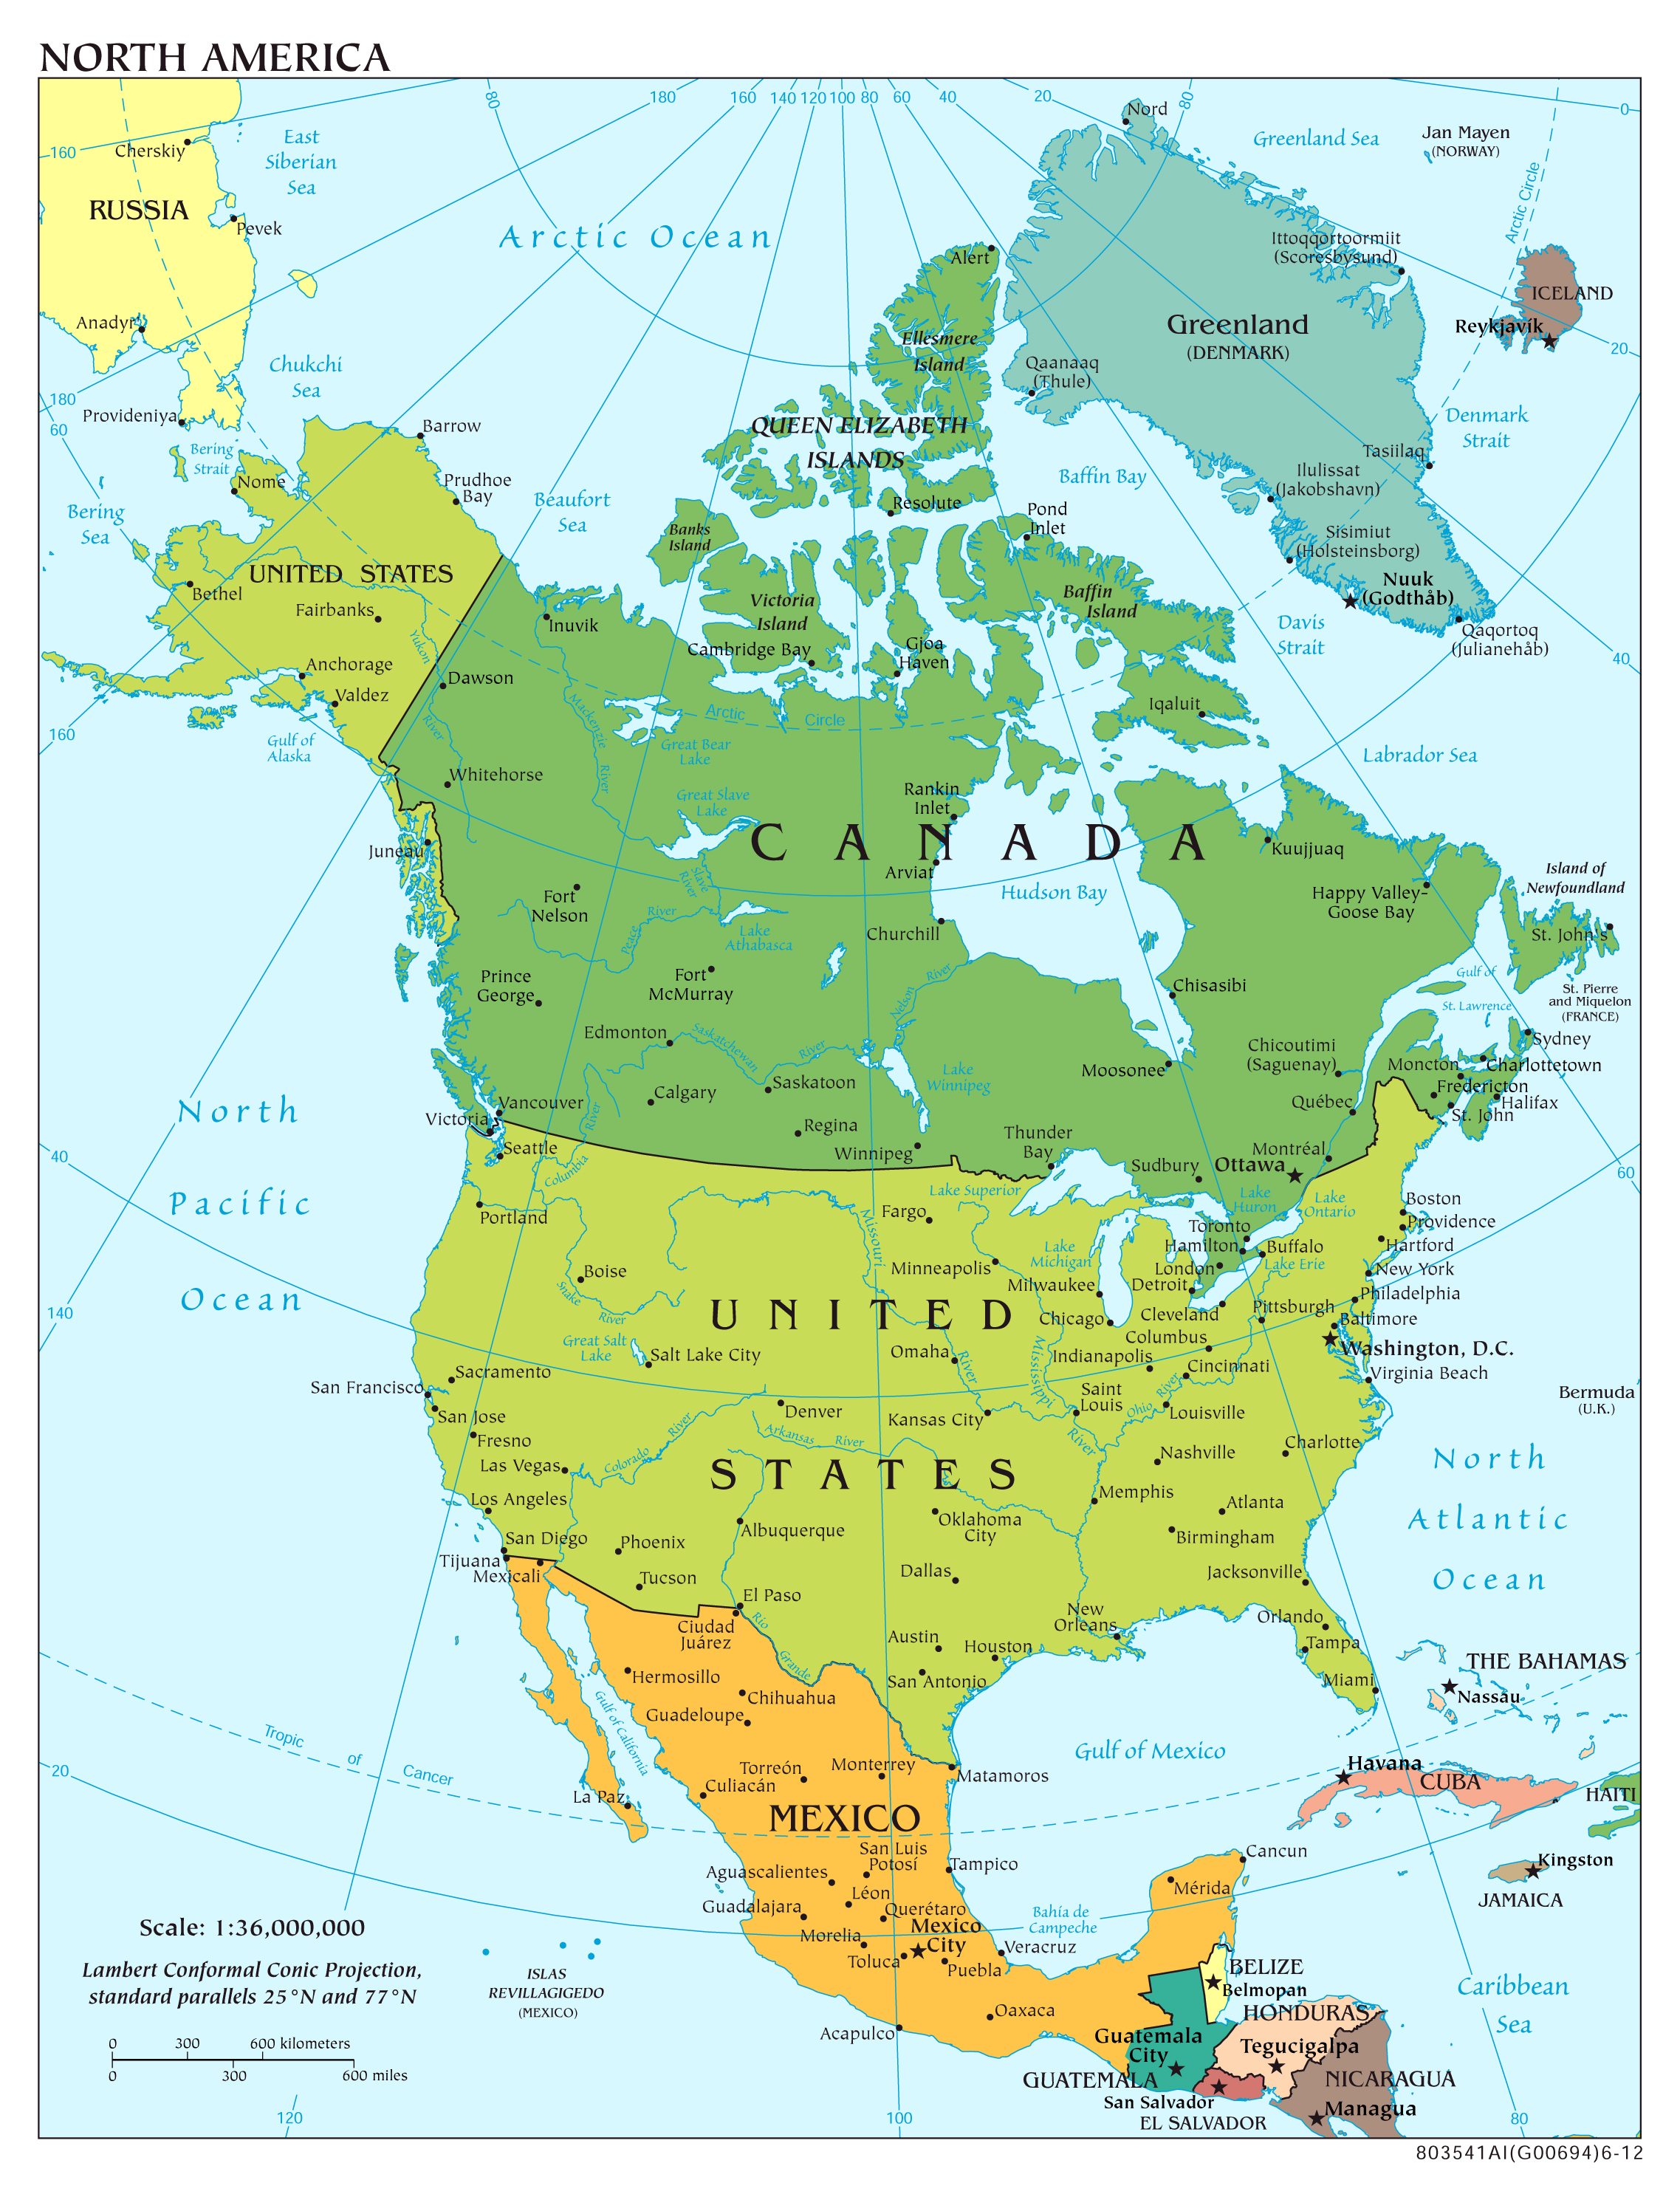 Large Scale Political Map Of North America With Major Cities And Capitals 2012 North America Mapsland Maps Of The World